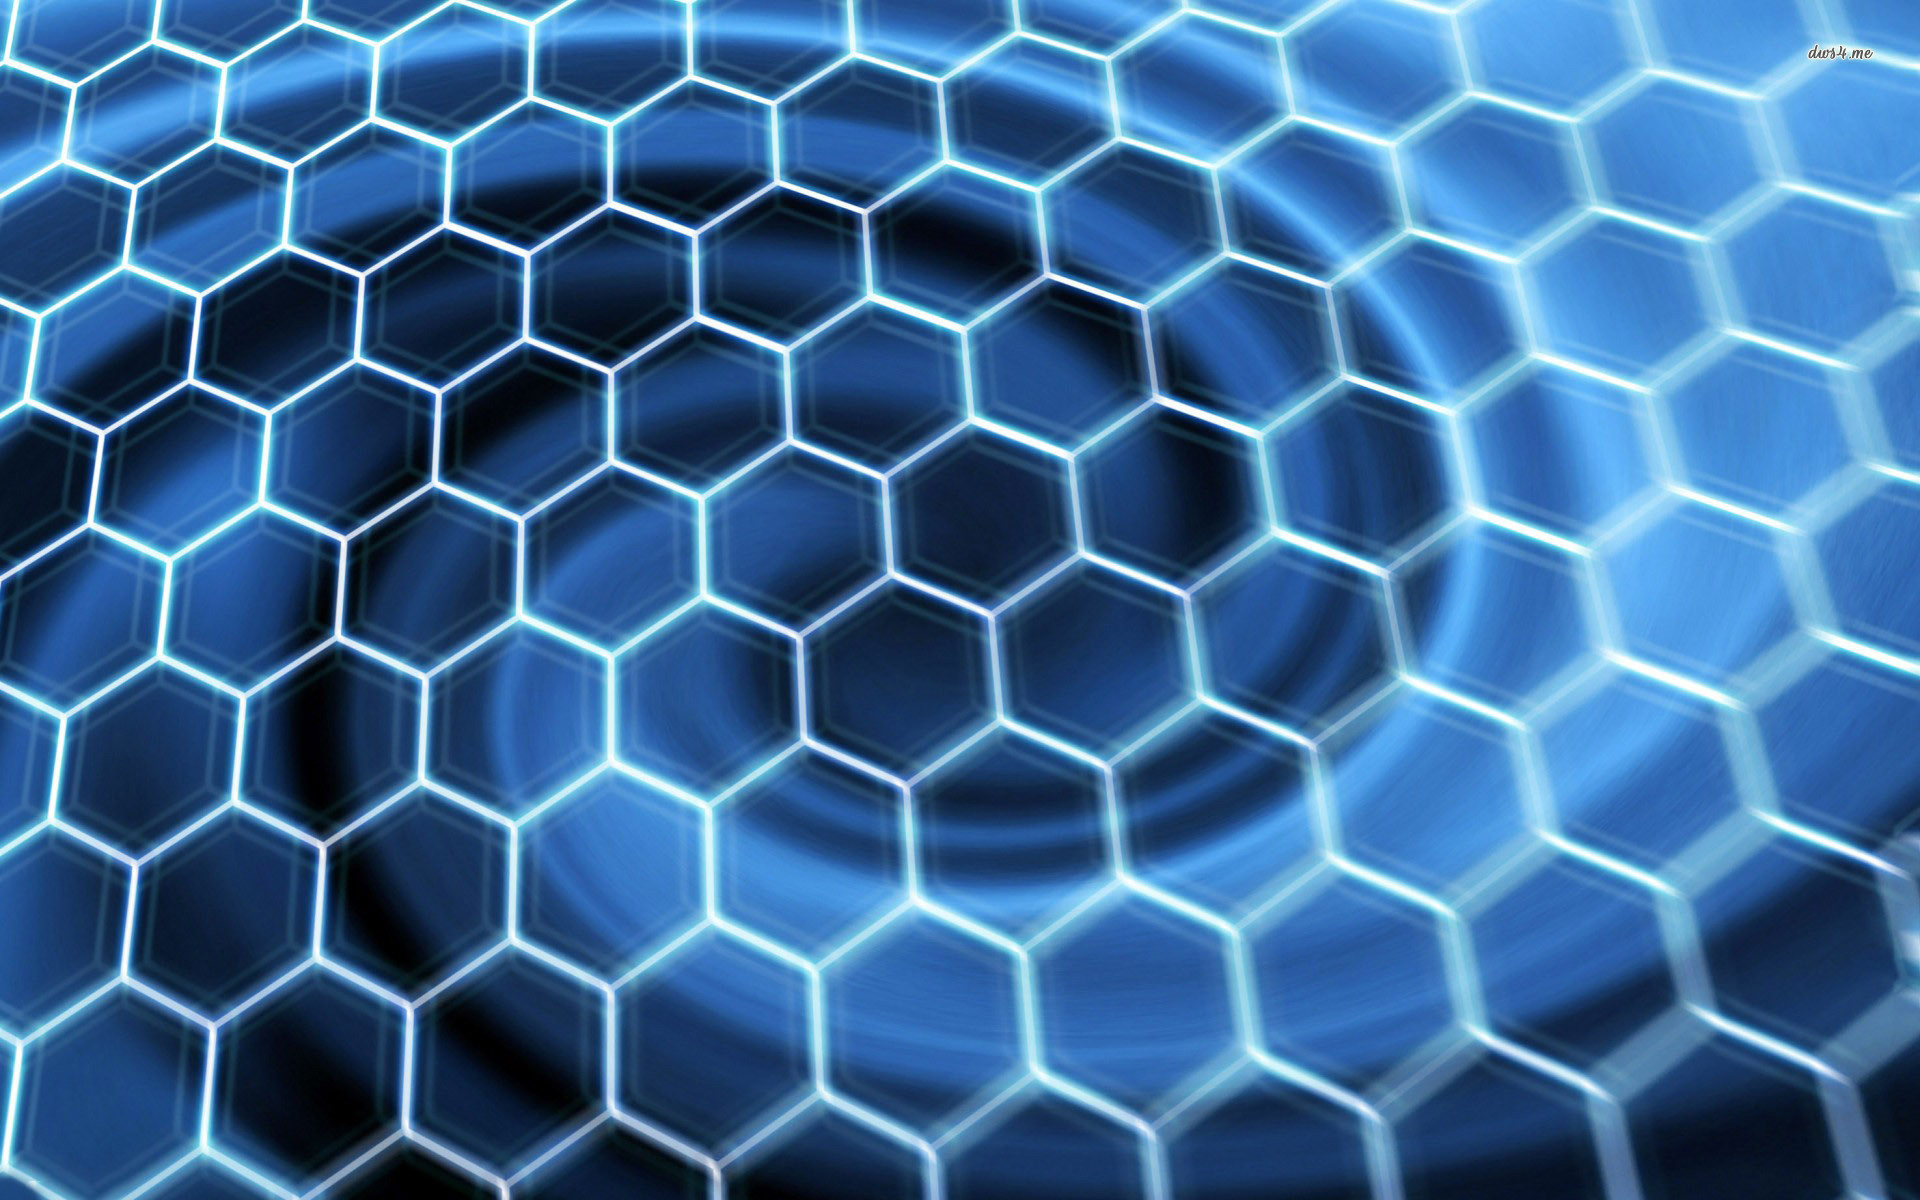 Res: 1920x1200, Honeycomb Pattern Honeycomb Pattern wallpapers HD free - 446262